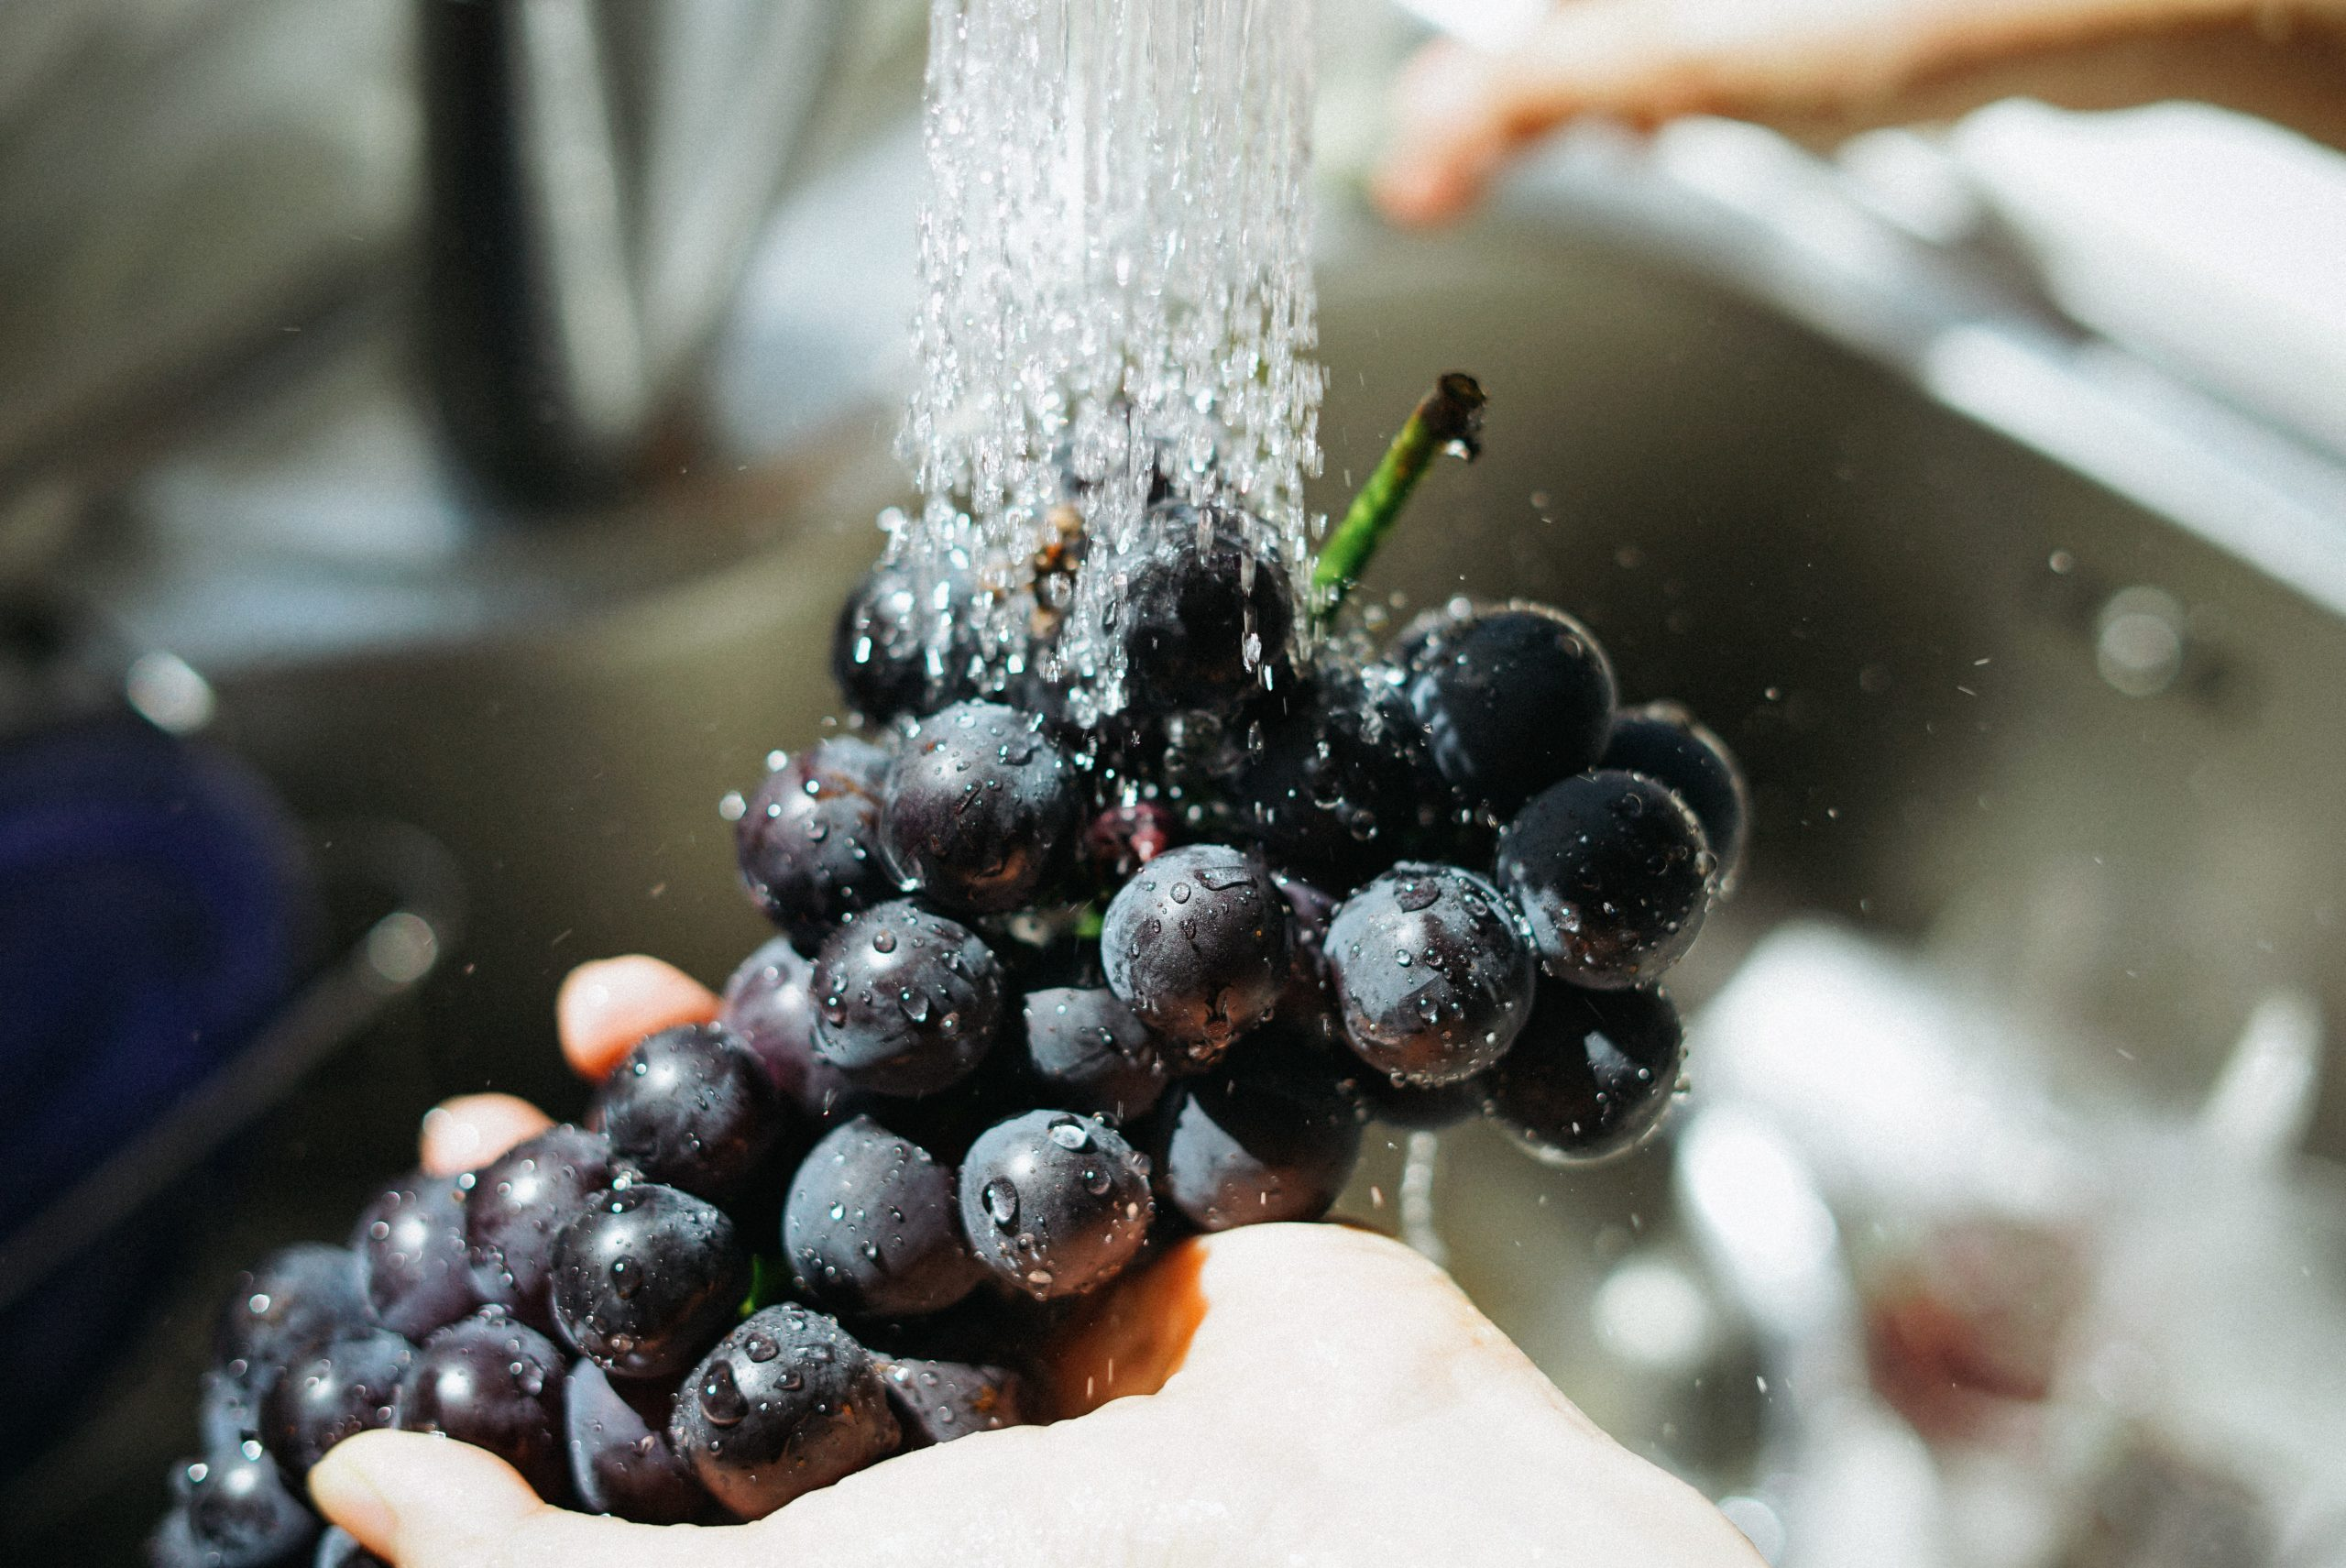 Tips for Washing Fruits and Vegetables